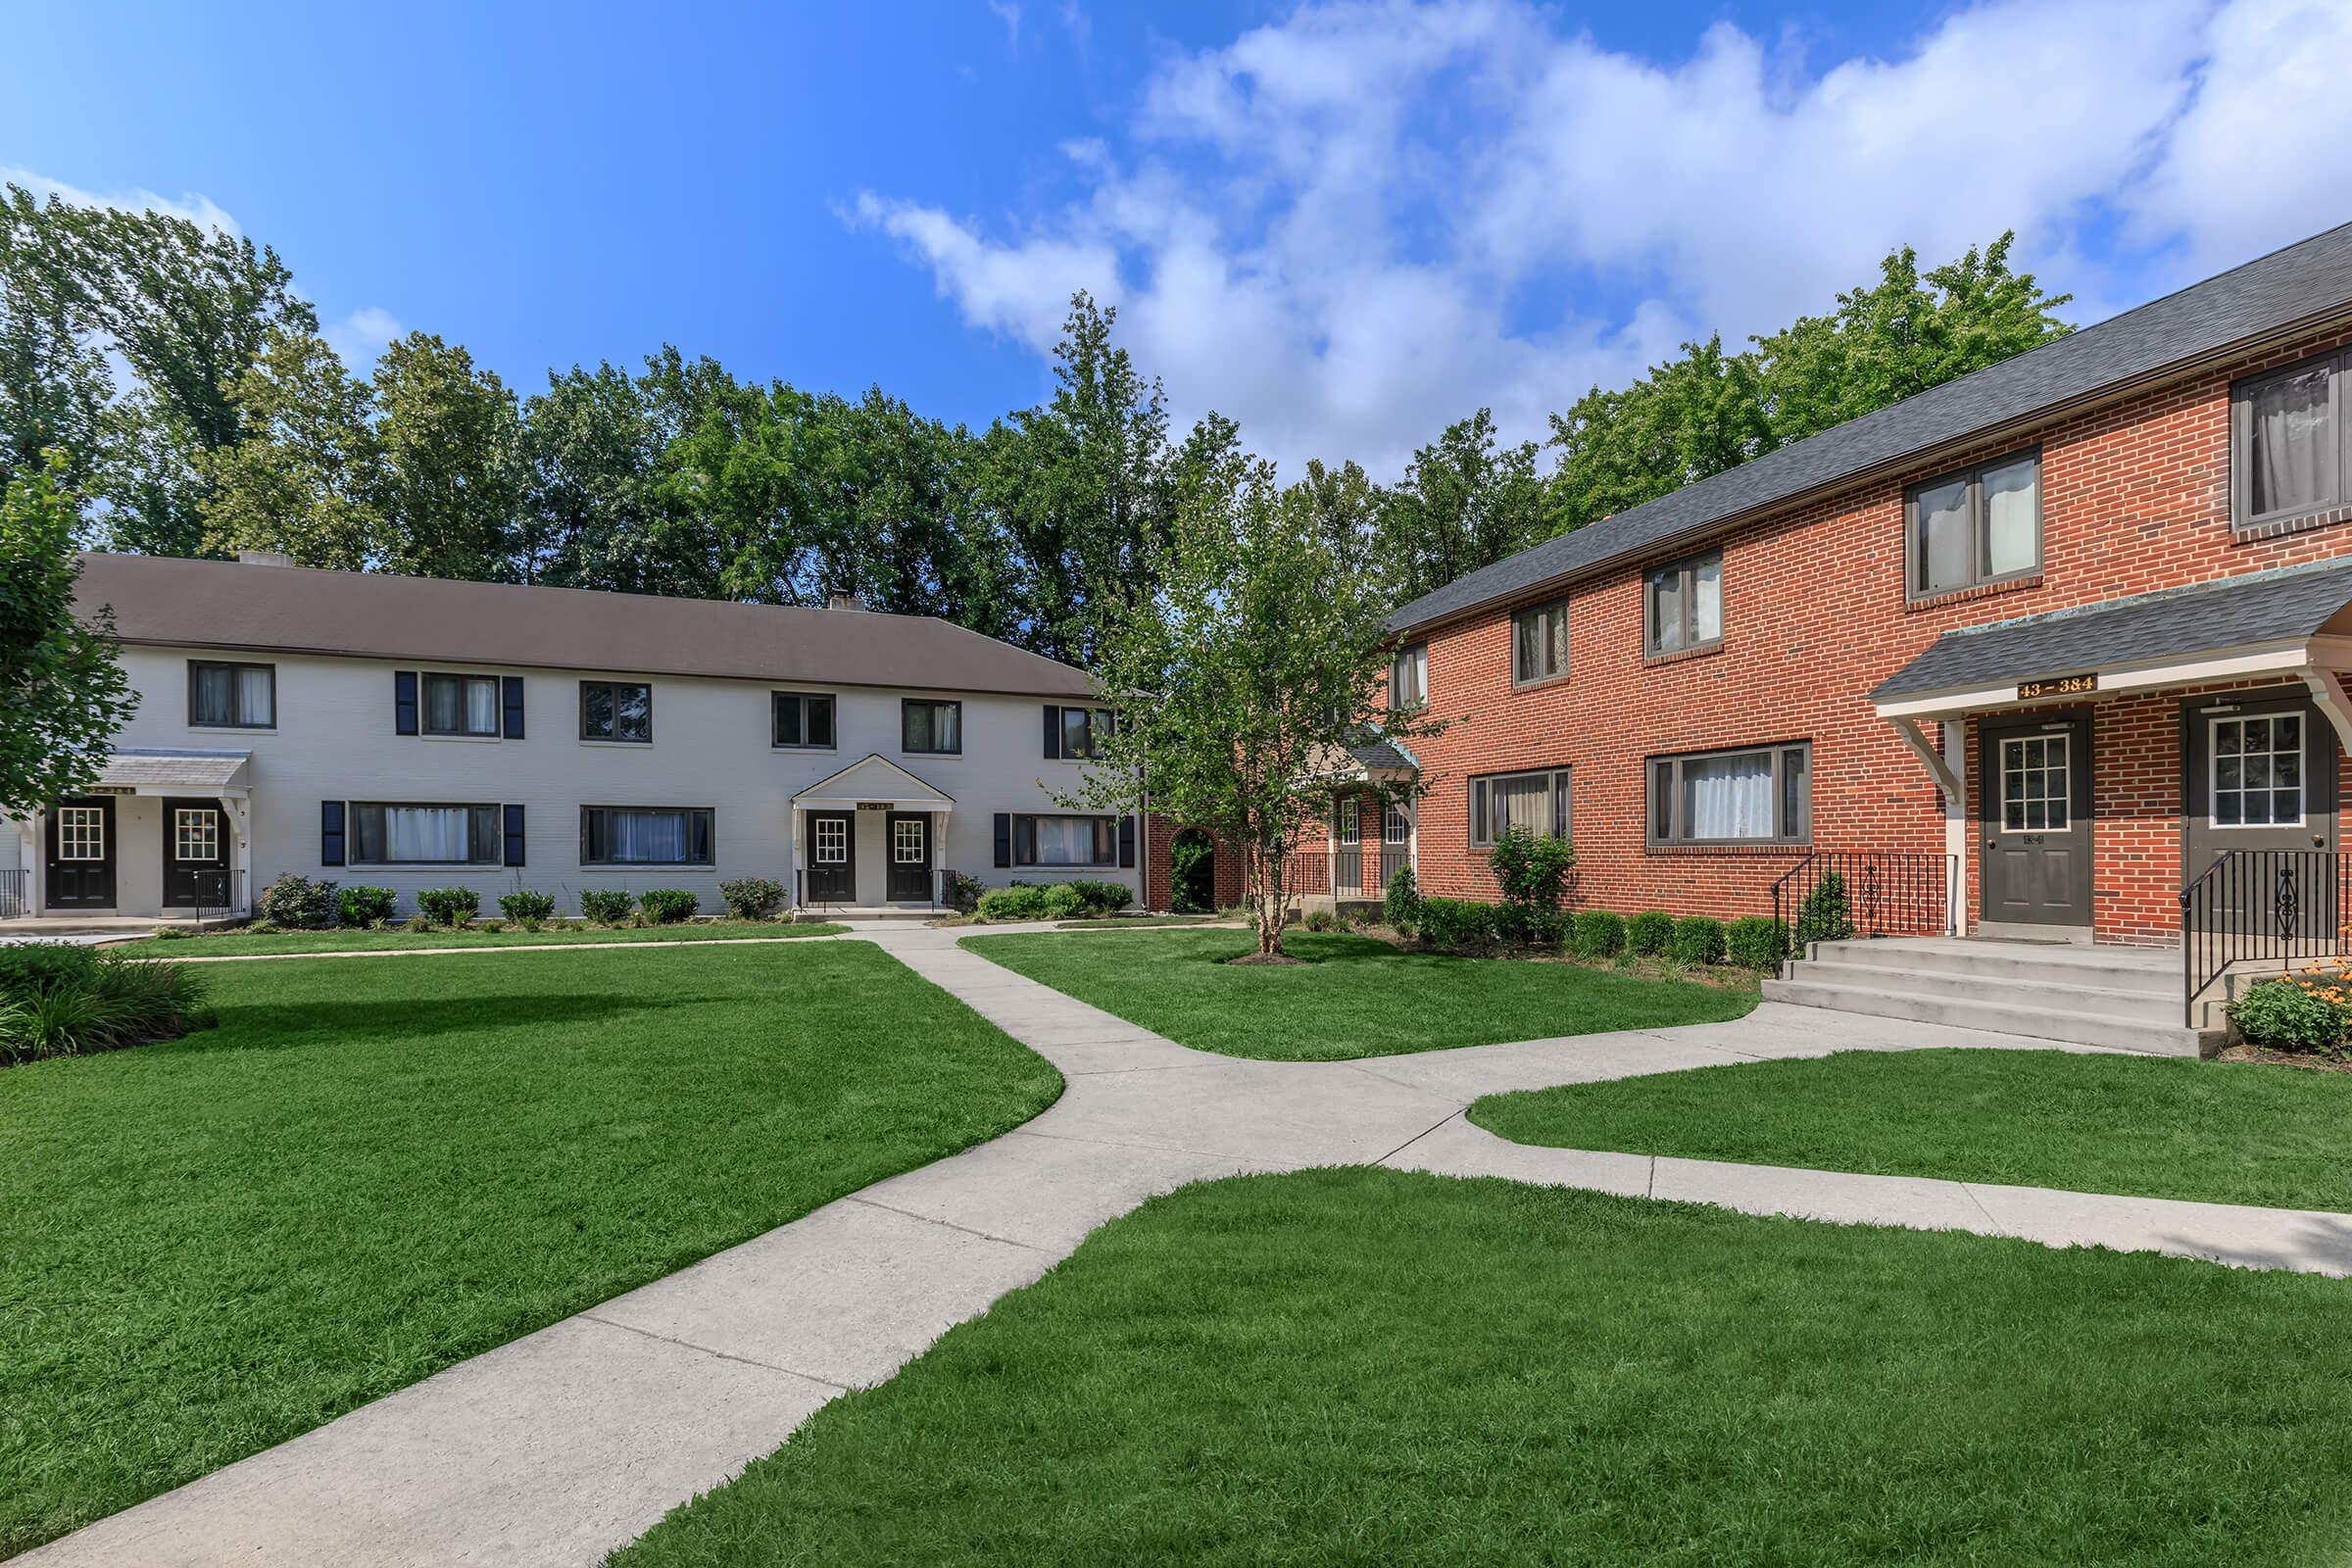 Picture of Drexelbrook Apartments